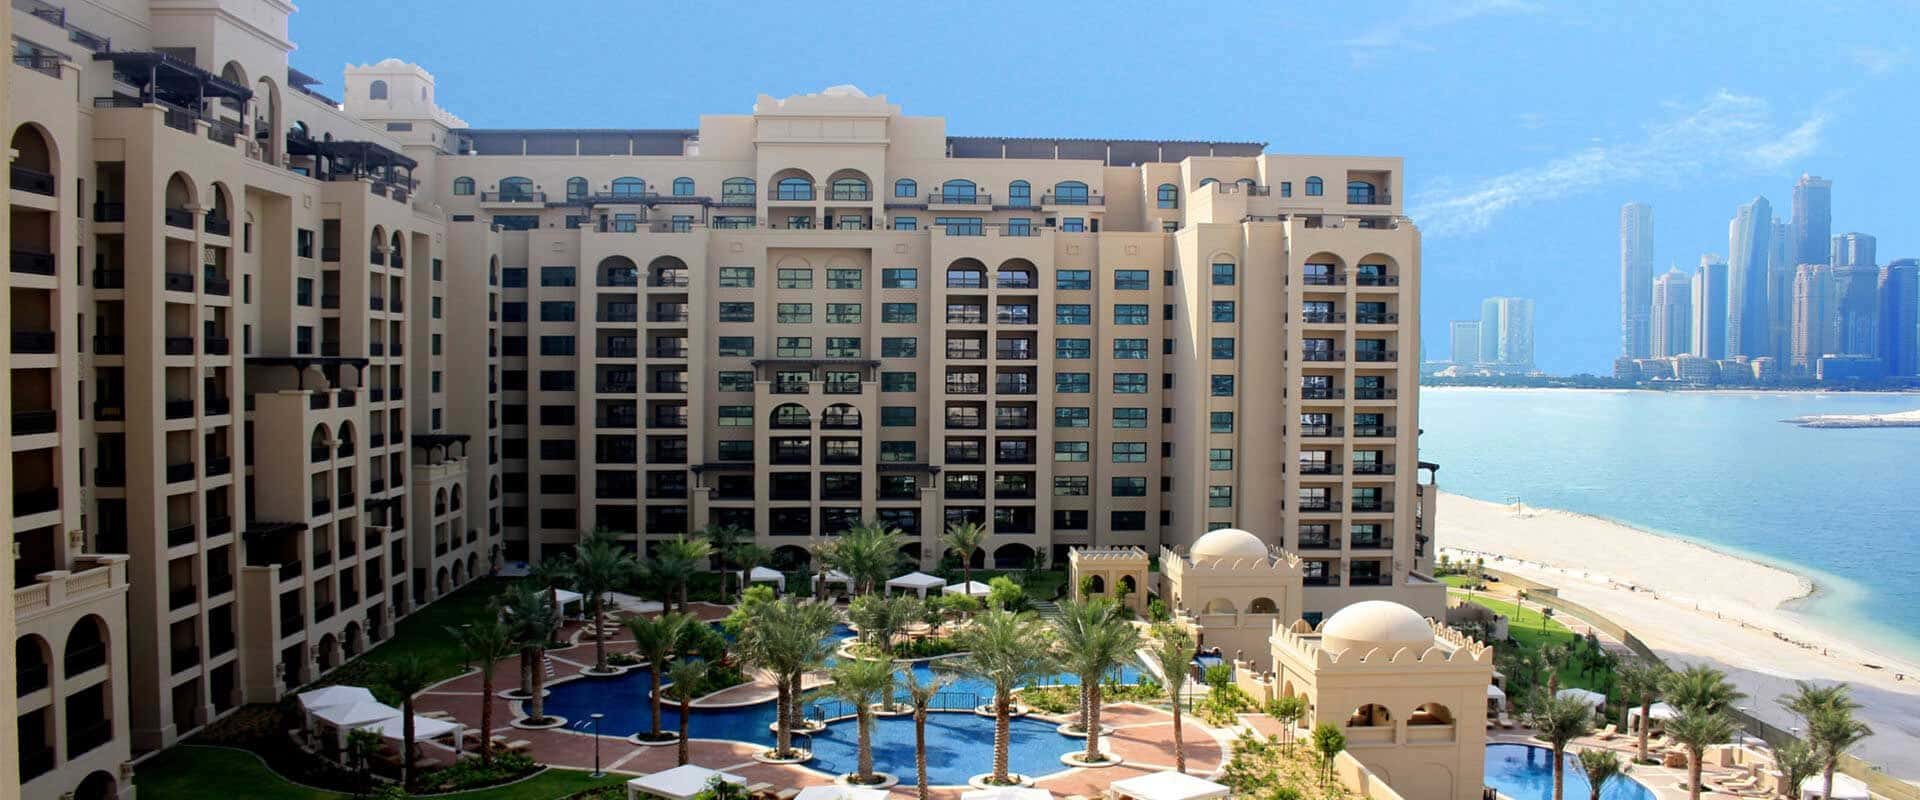 Properties for Sale in Dubai by IFA Hotels & Resorts